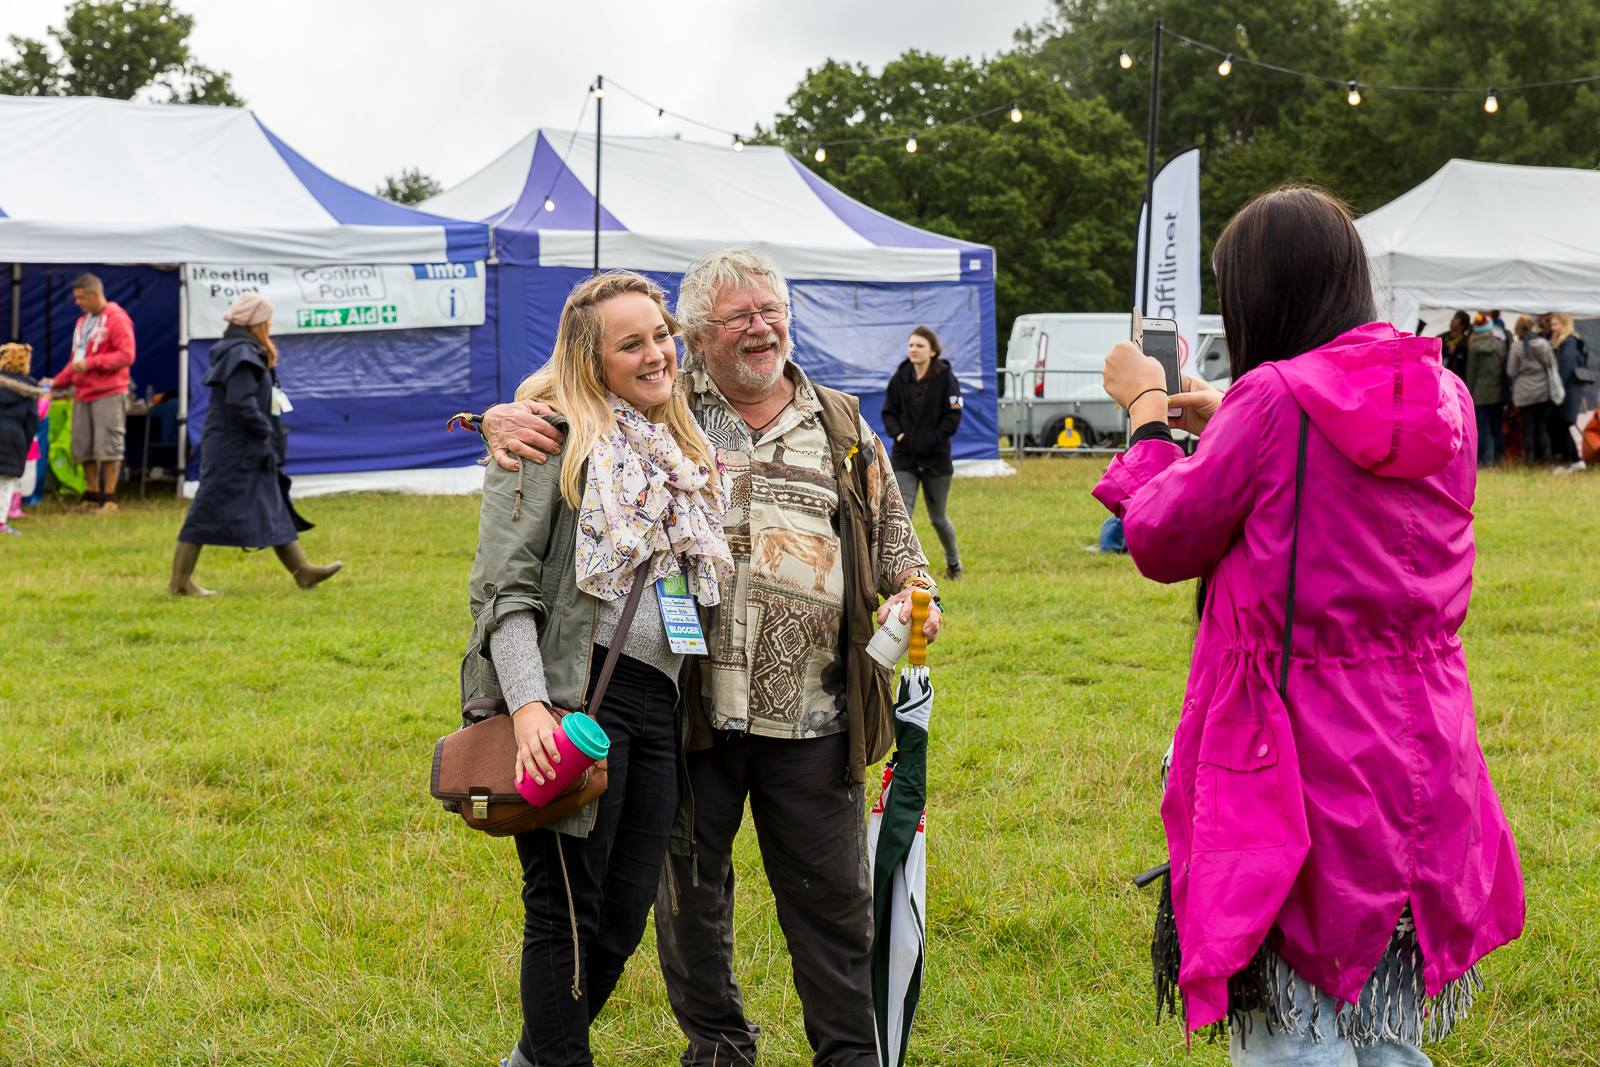 Bill Oddie BlogStock